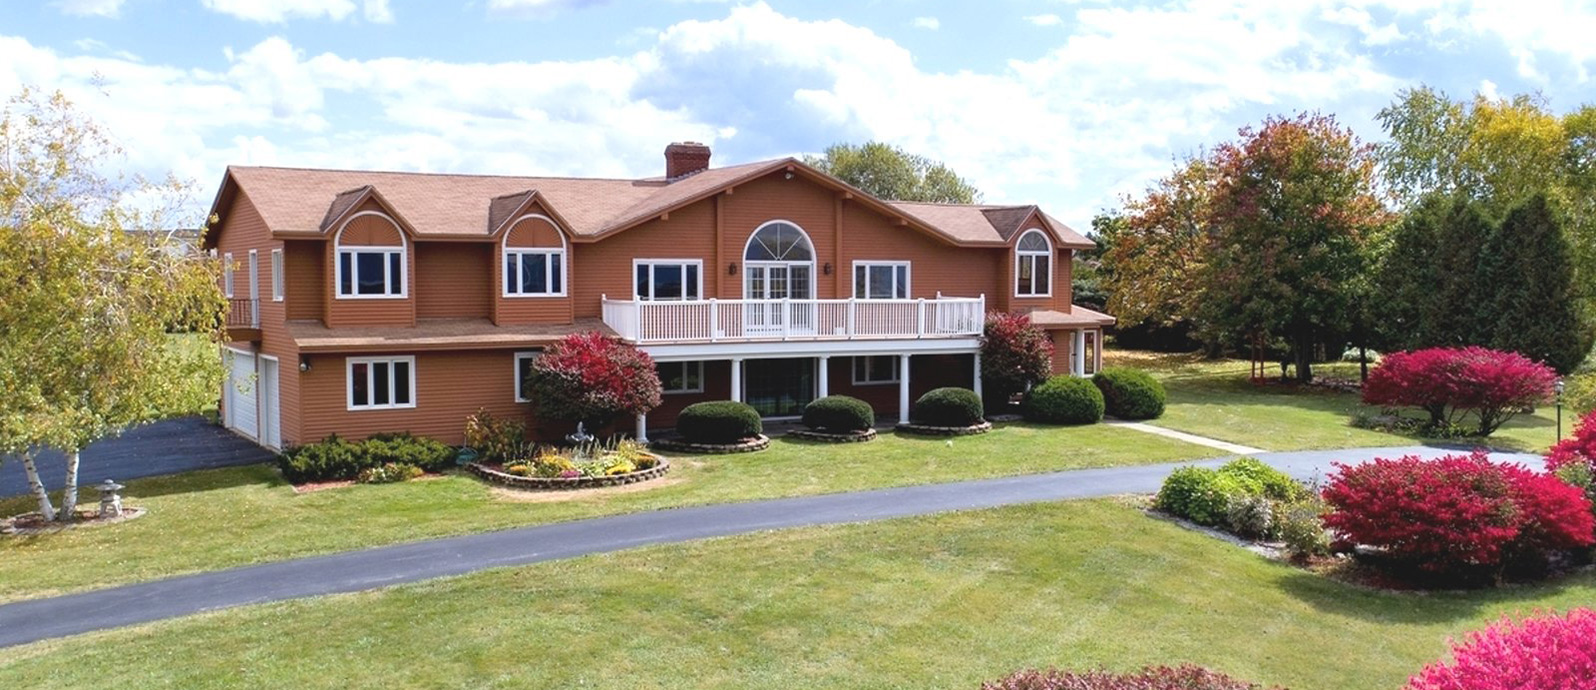 Home for Sale in South Burlington VT